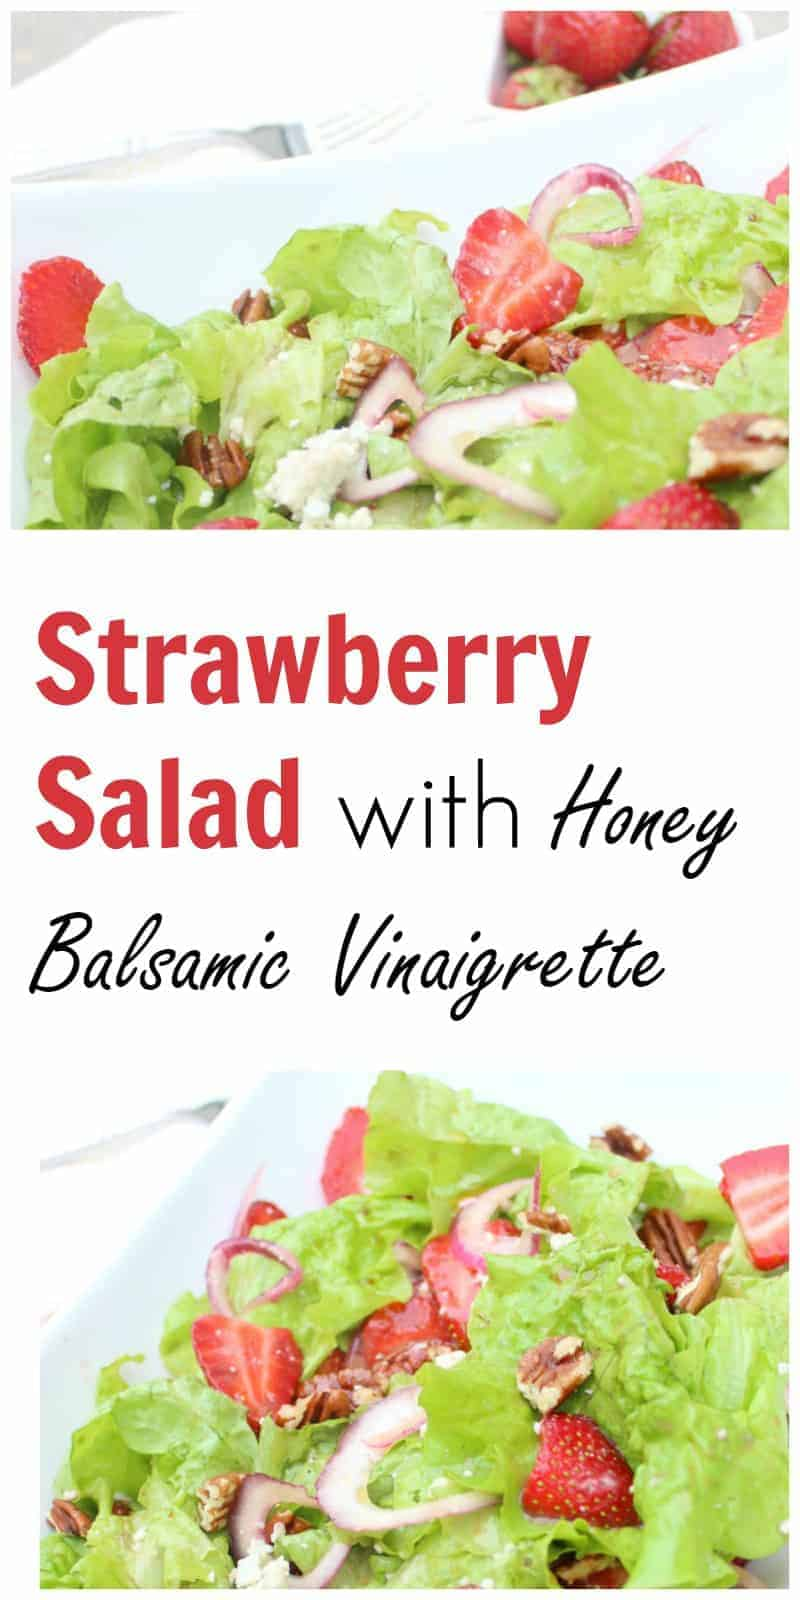 Strawberry salad with honey vanilla balsamic dressing